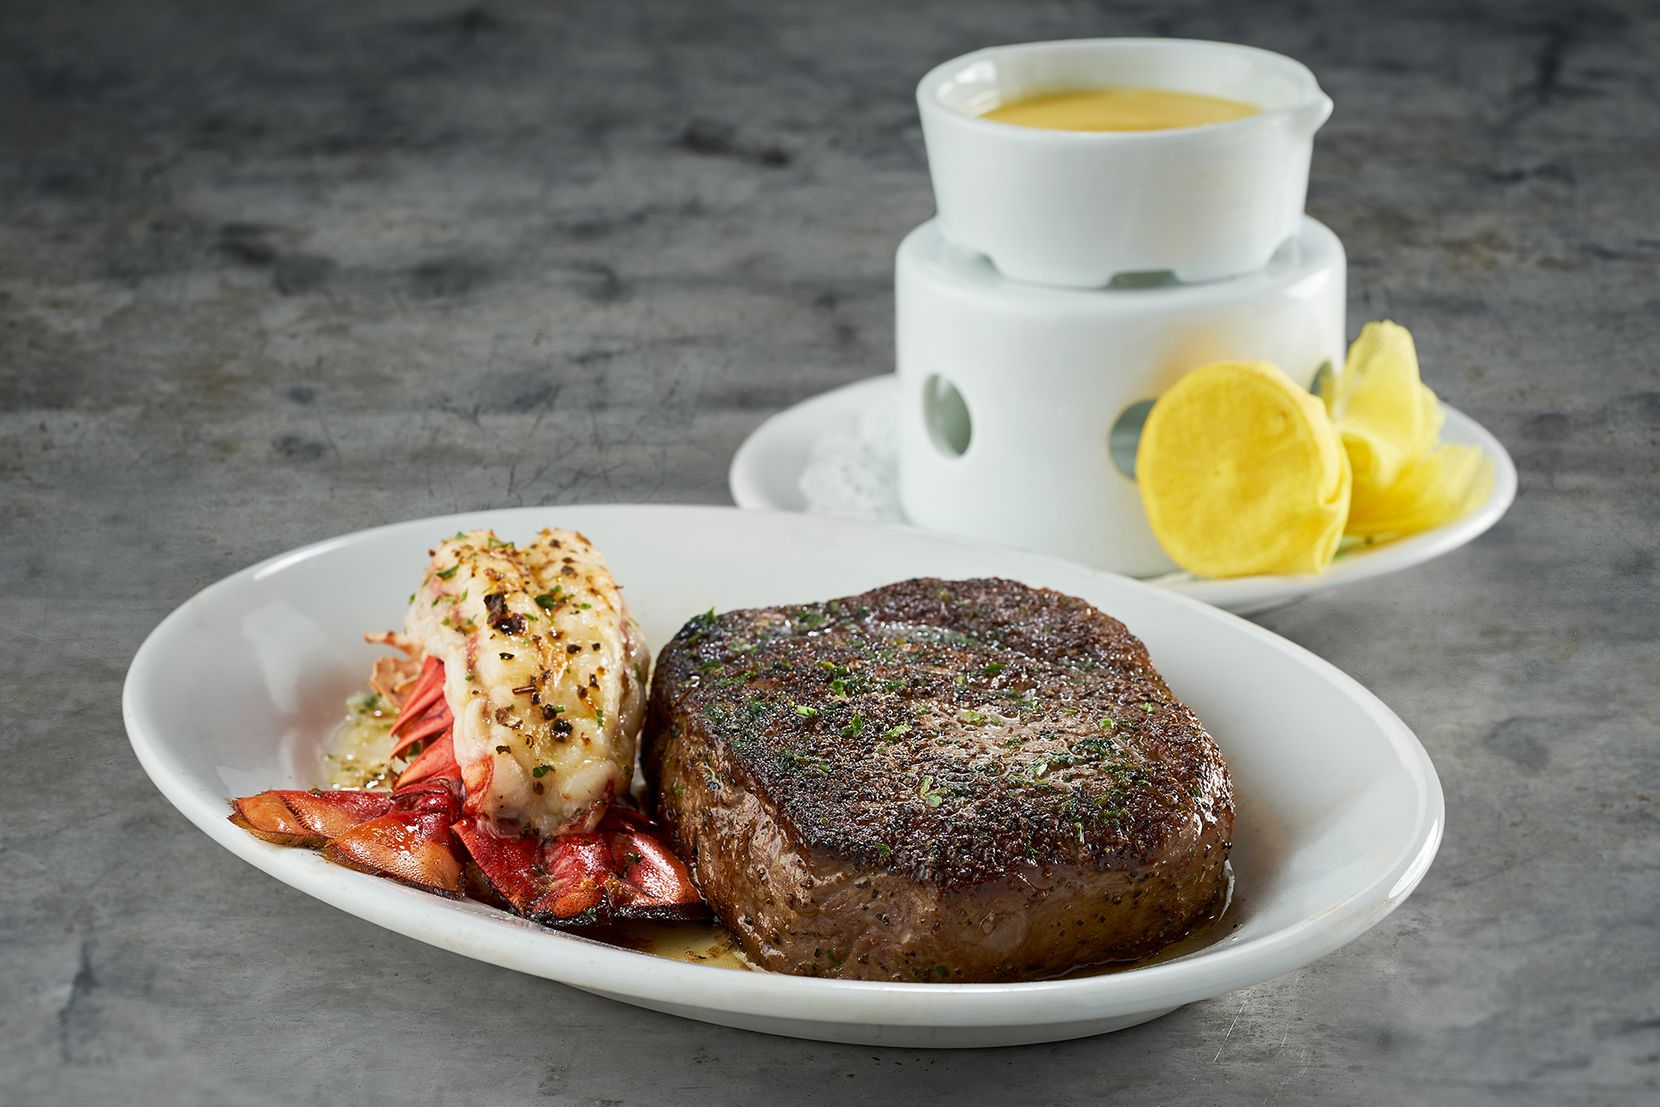 Ruth's Chris Steak House offers dads a surf-and-turf special starting at $59 that includes a choice of ribeye, plus a coldwater lobster tail, salad and a personal side.